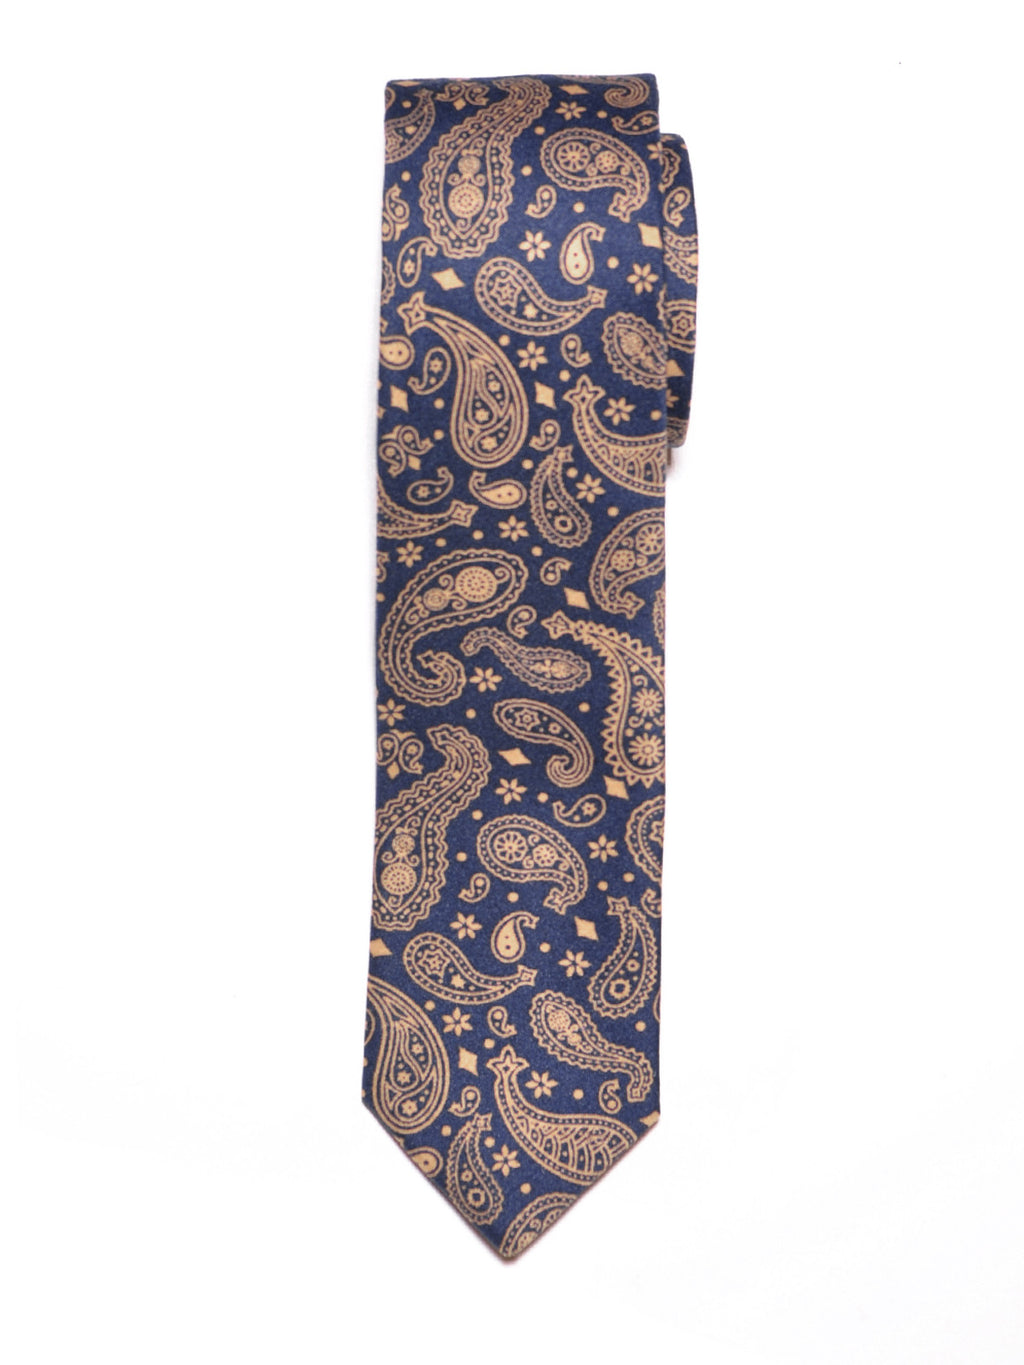 Blue Paisley Print Cotton Tie